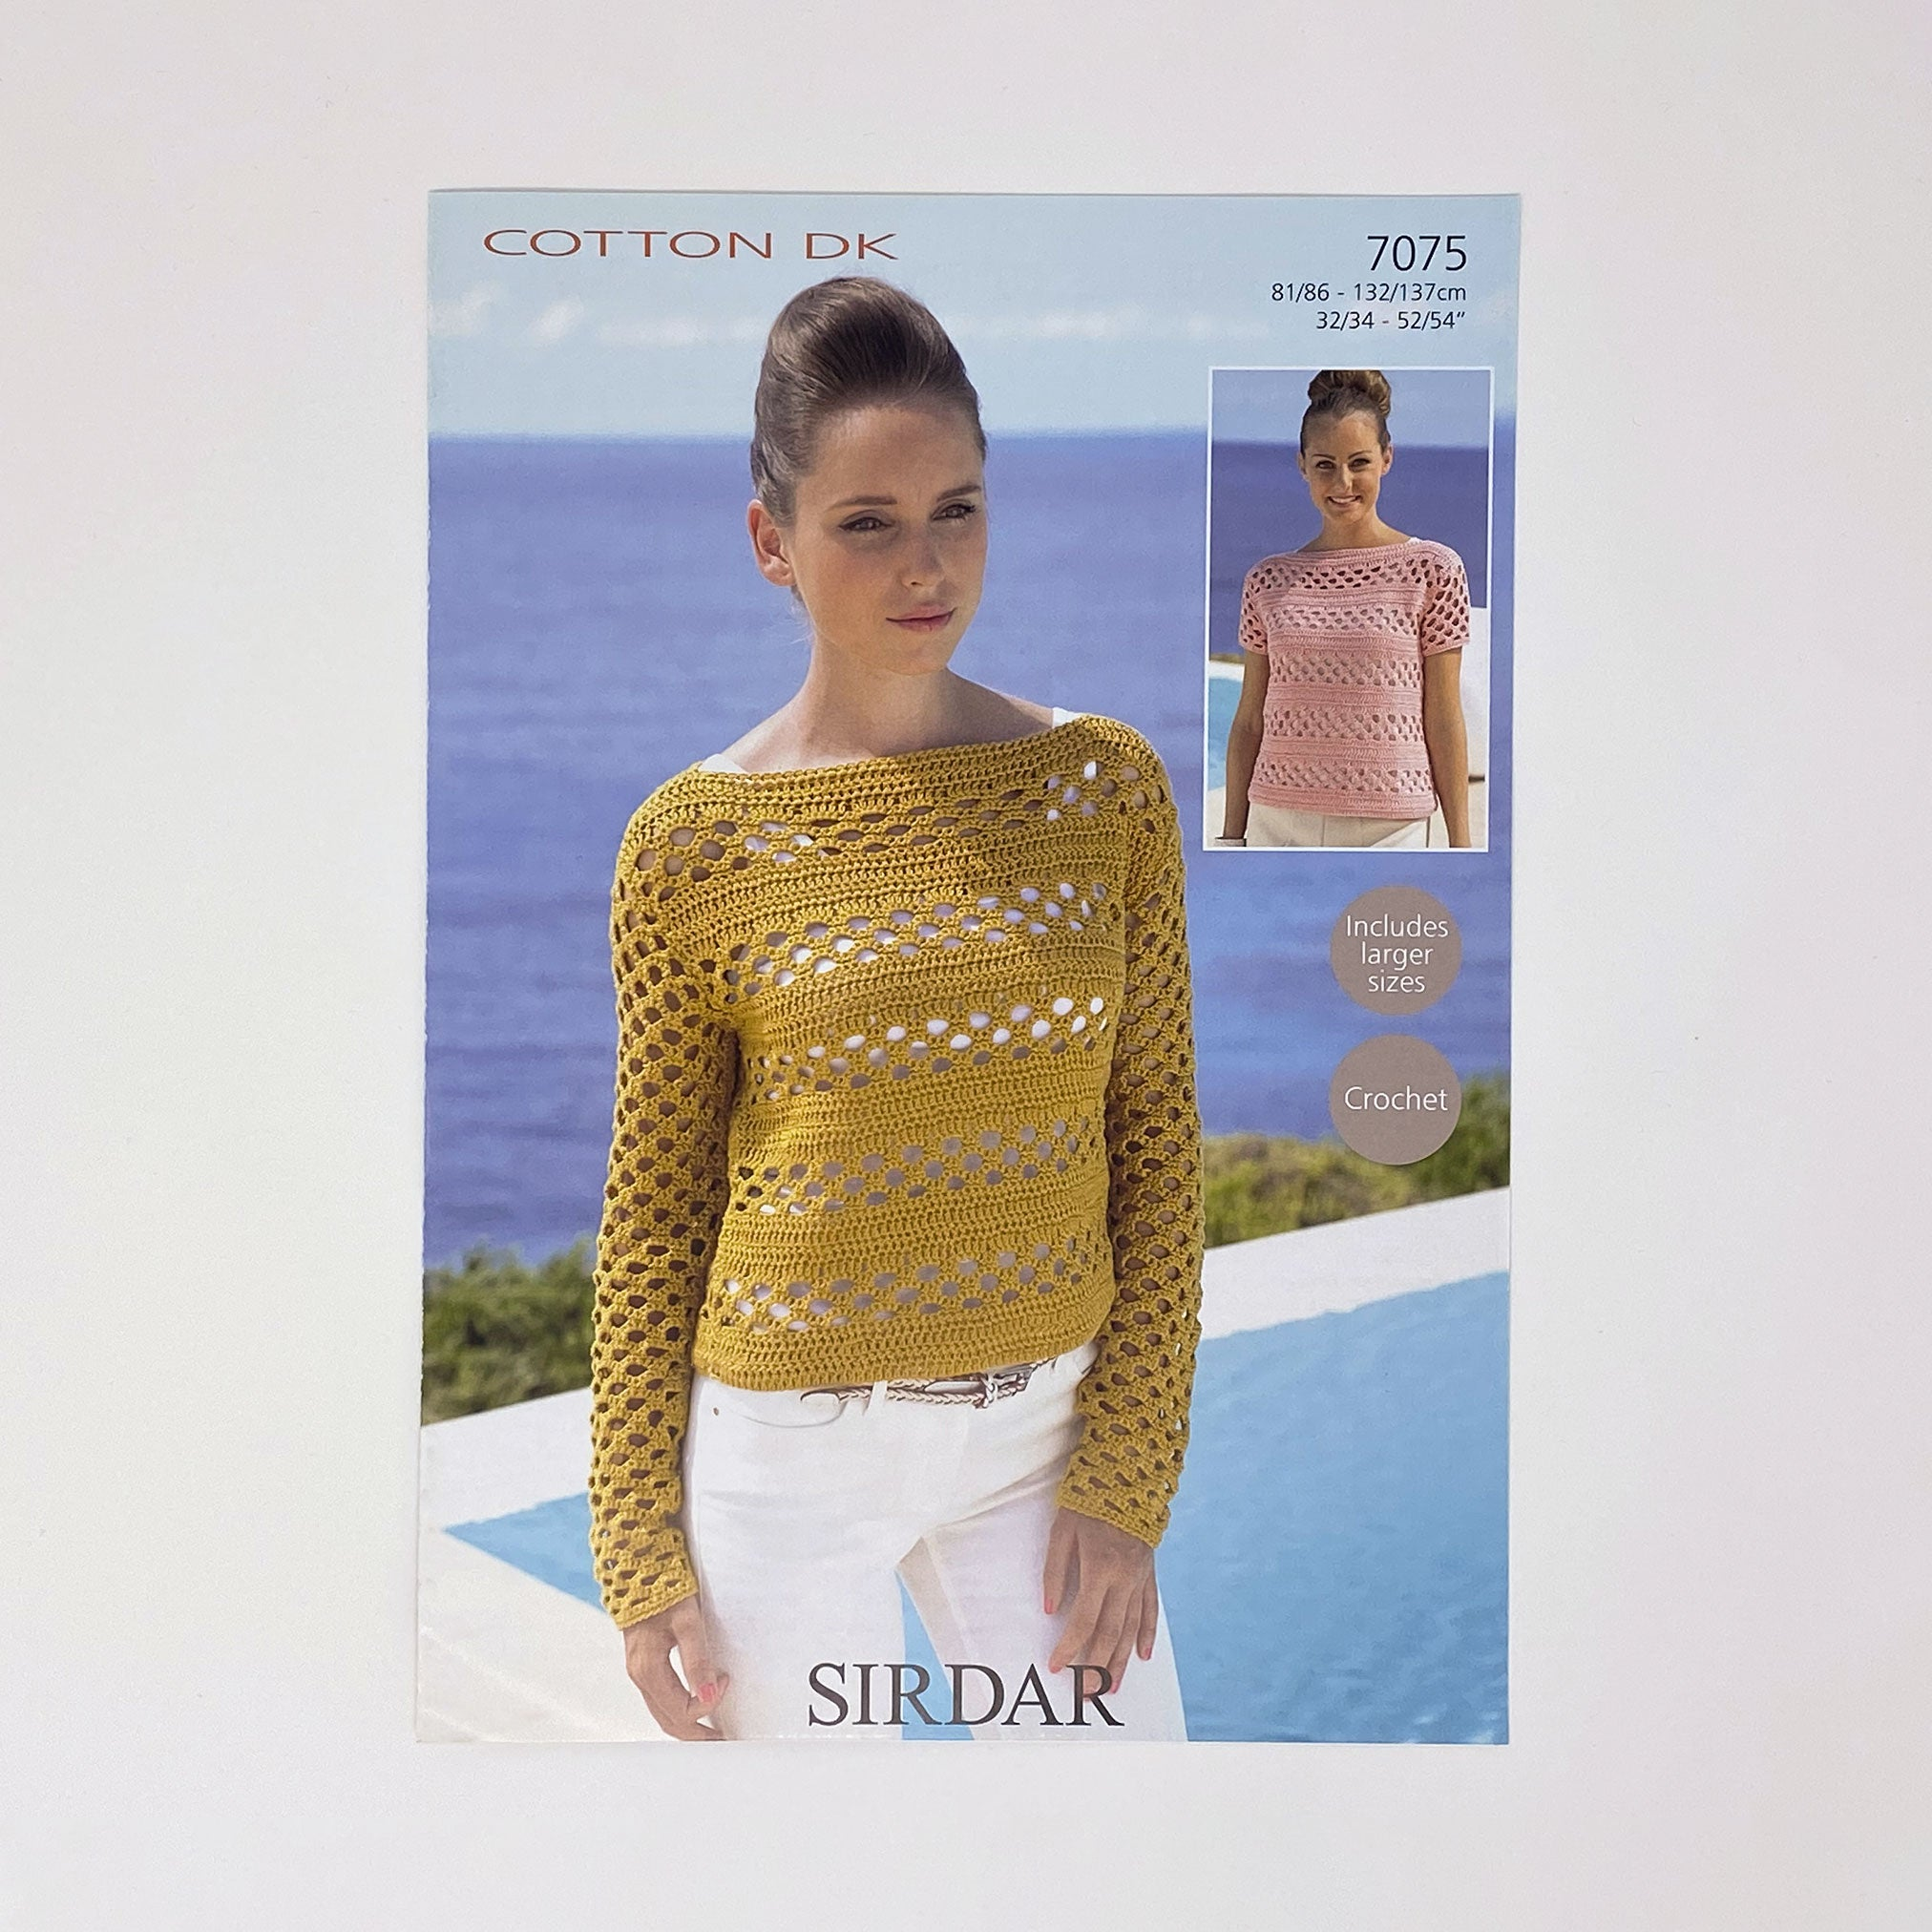 SIRDAR Crochet Cotton DK (7075) crochet sweater pattern